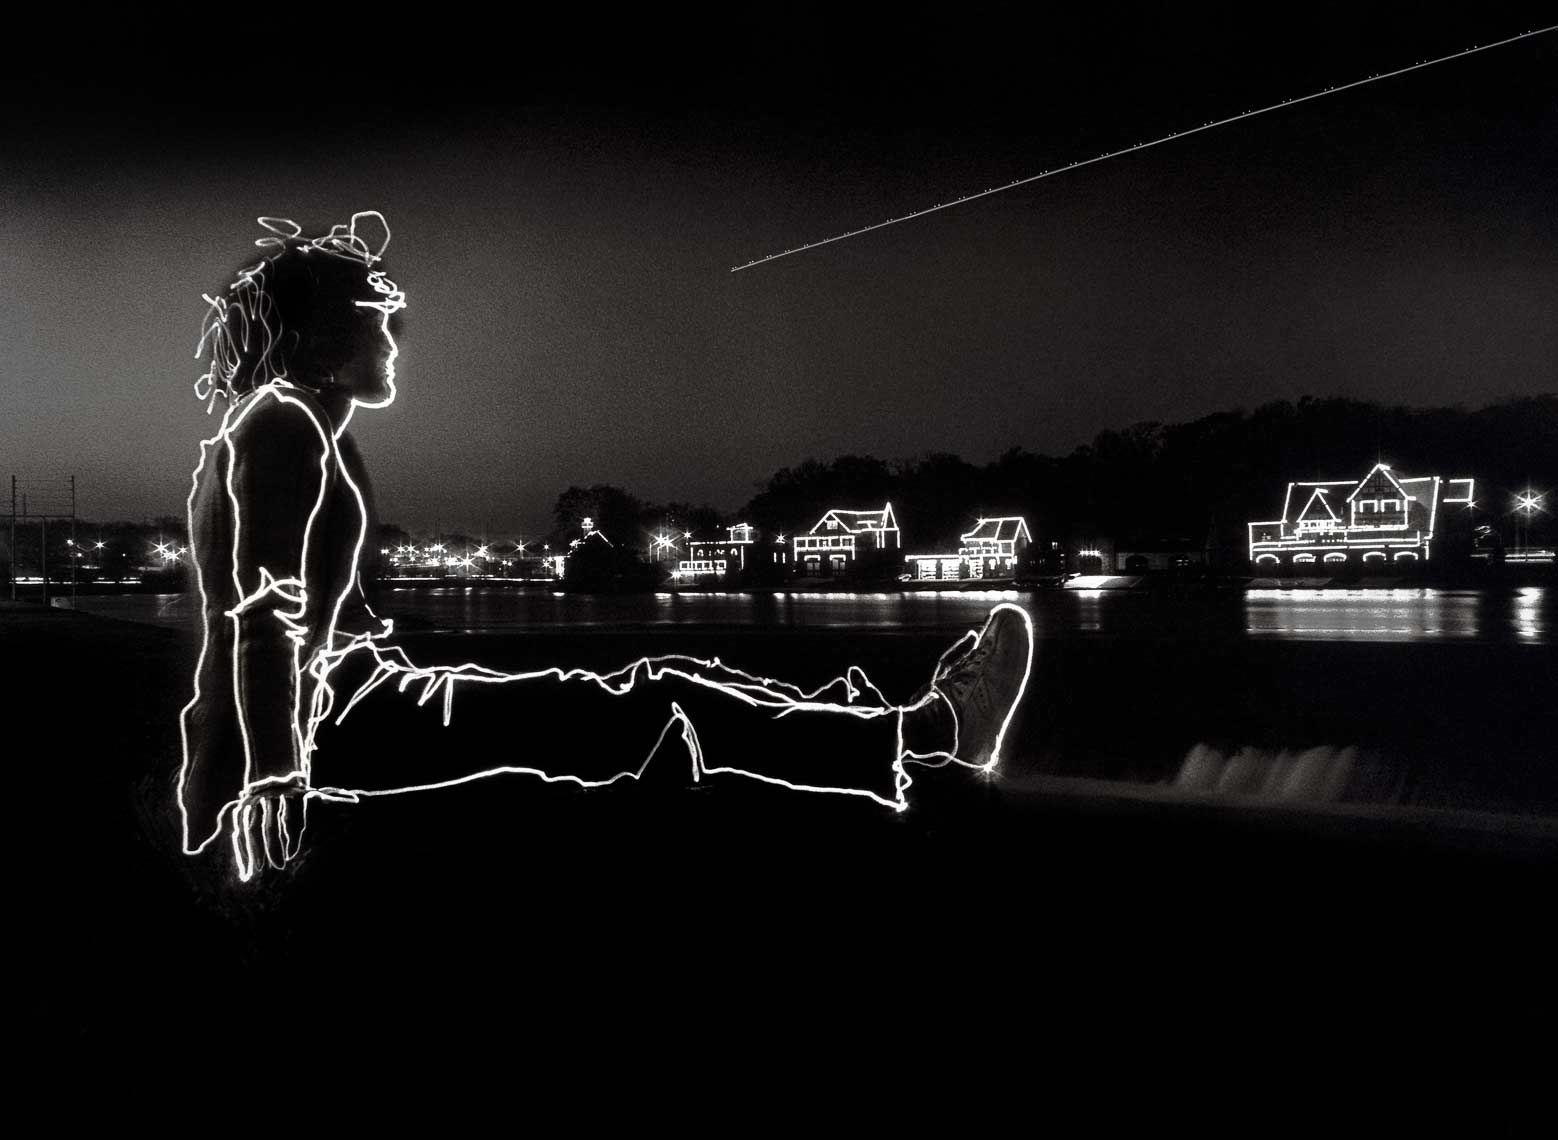 David Lebe; Boat House Row, 1981, light drawing, black and white photograph